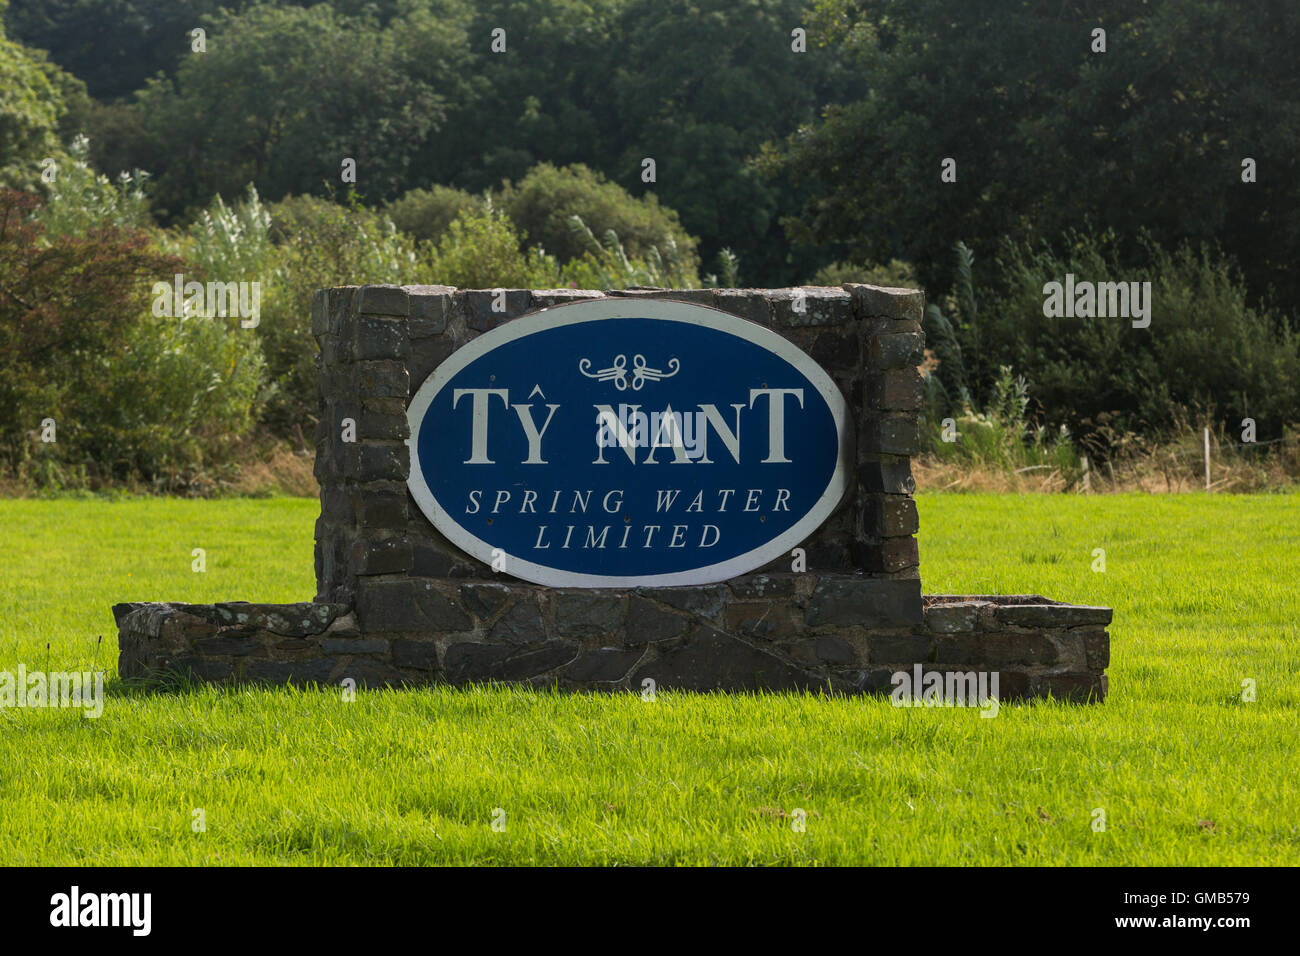 Ty Nant spring water sign on the entrance to the factory in Bethania Wales - Stock Image